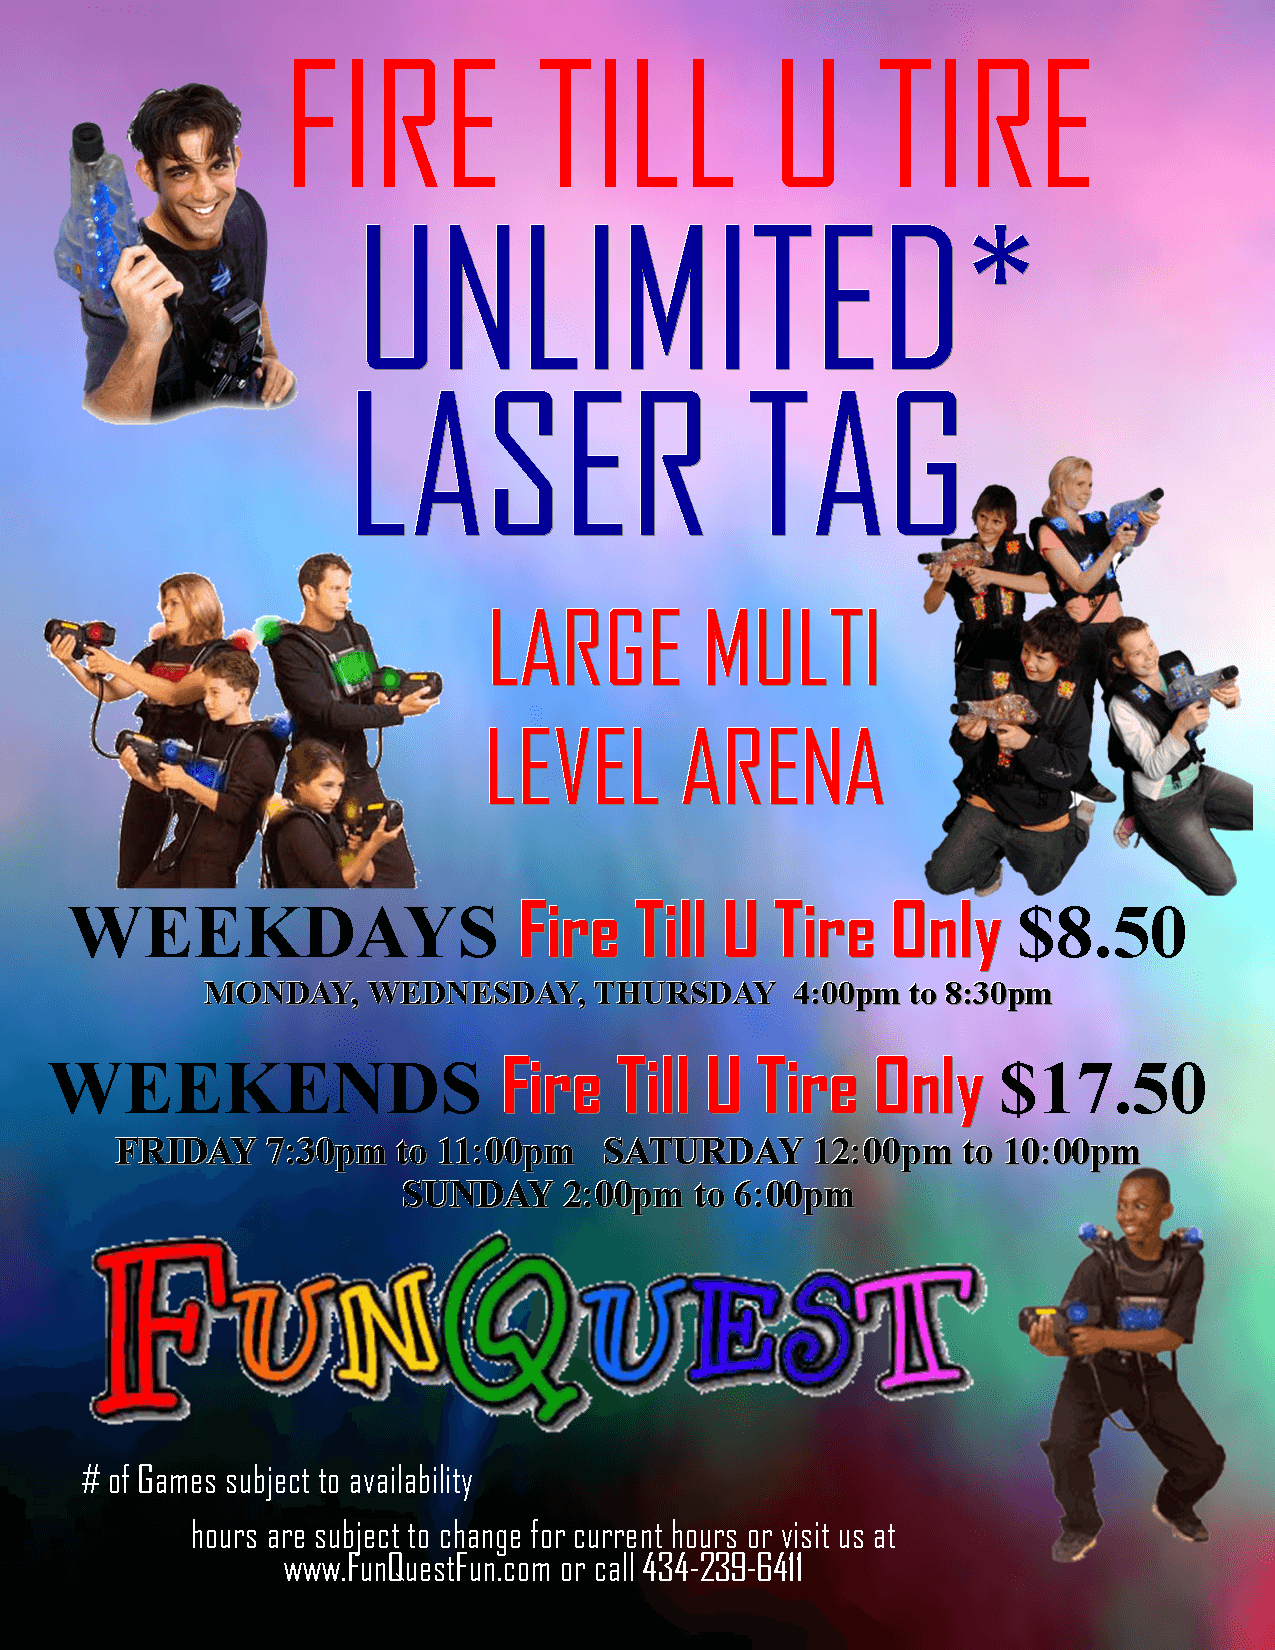 UNLIMITED_LASER_TAG-9-2012